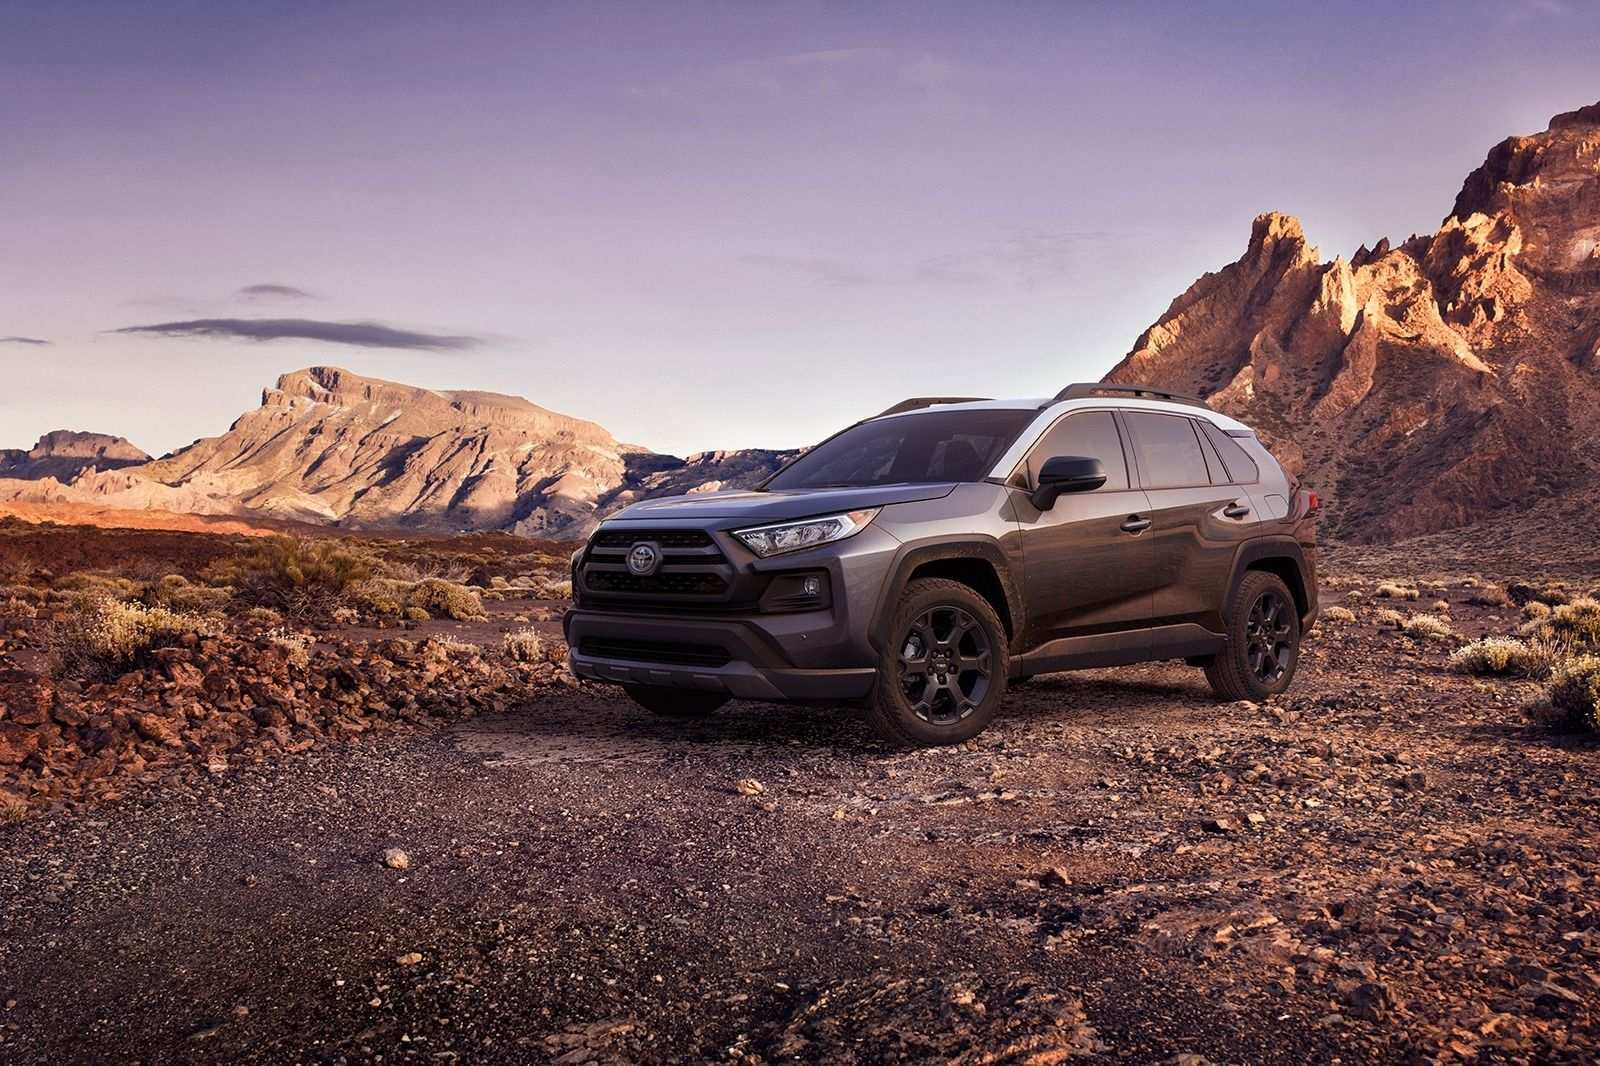 44 All New 2020 Toyota Rav4 Hybrid Redesign And Concept